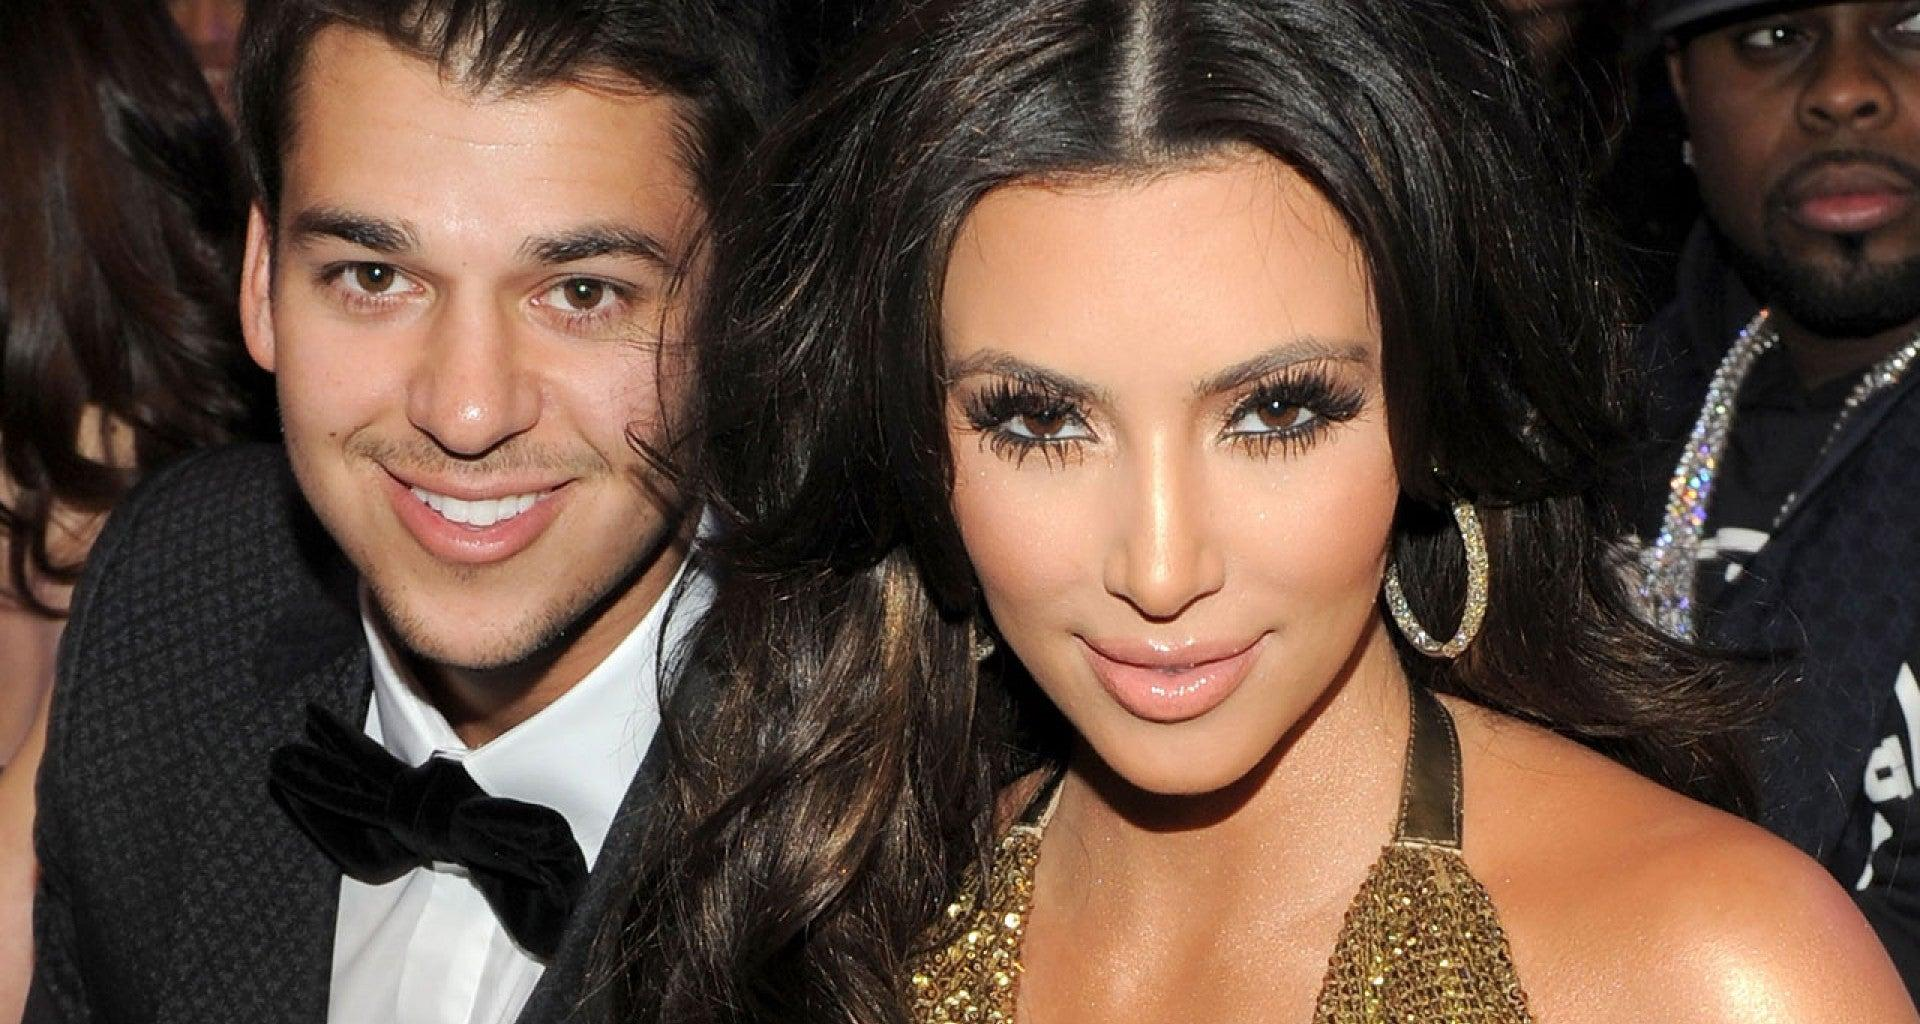 KUWTK: Rob Kardashian Tells Sister Kim To 'Stop Playing' Because Of This Hot Post Of Her Posing With North's Dog - Check It Out!